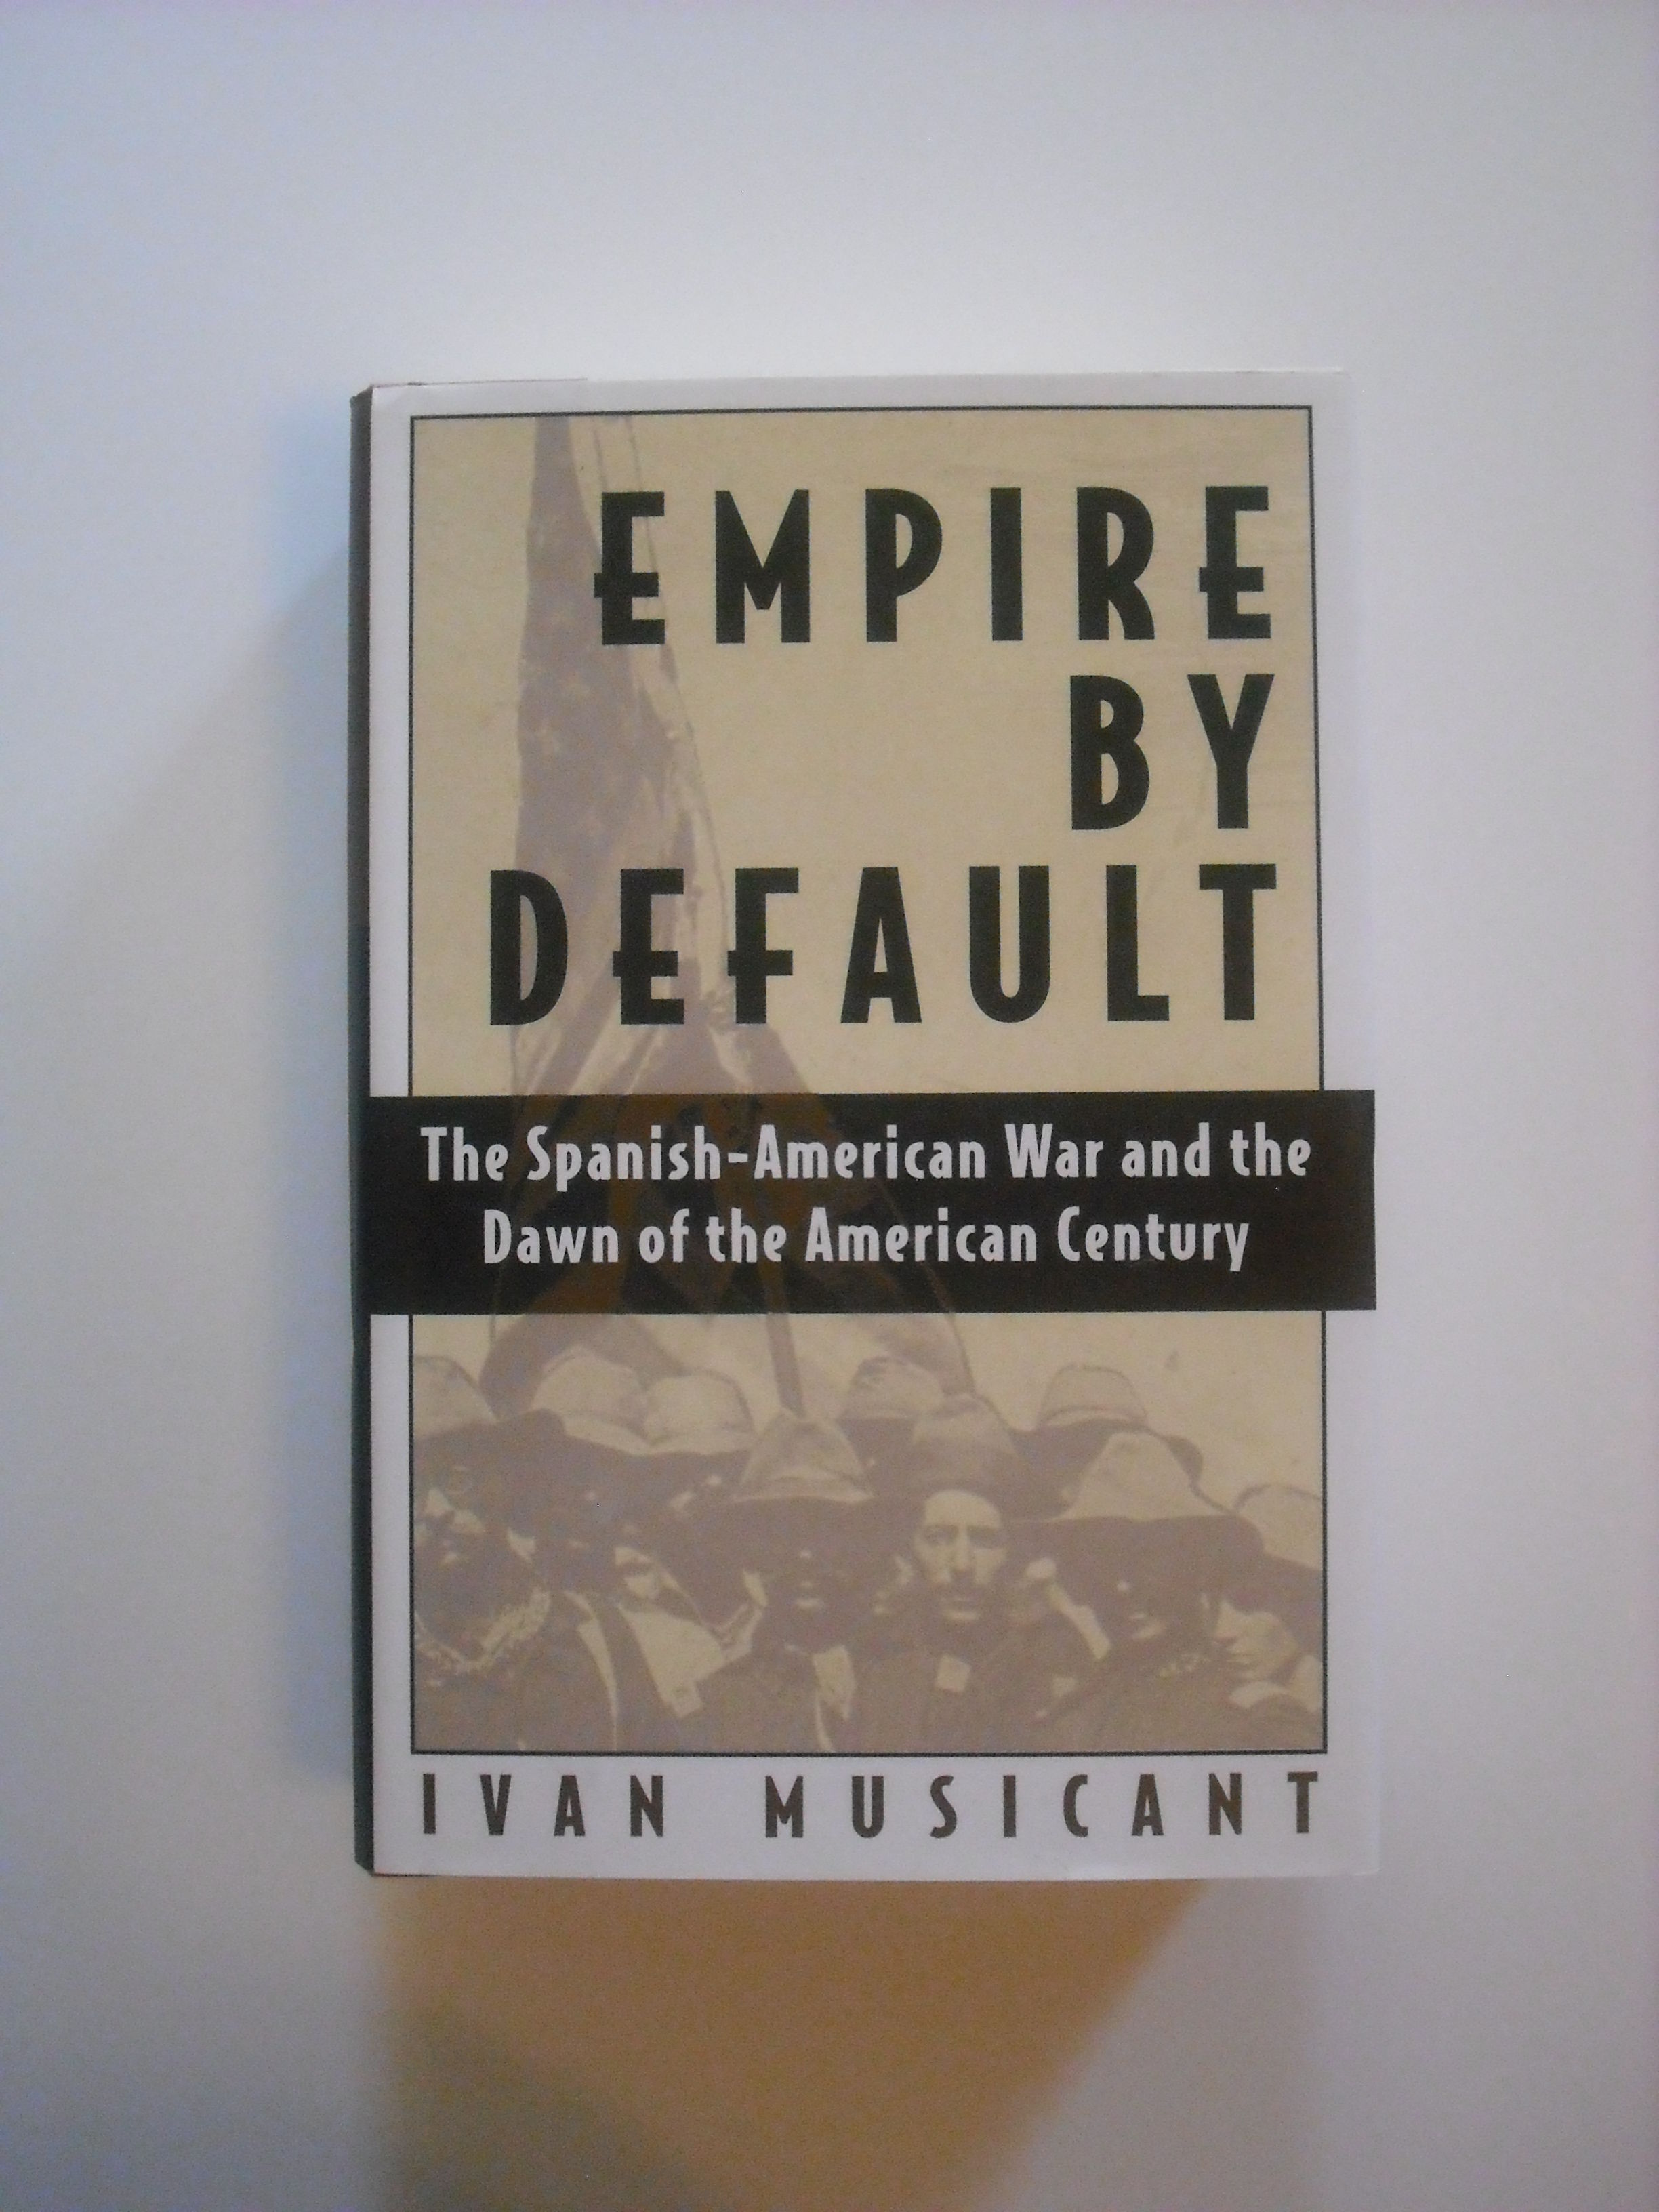 The Spanish-American War and the Dawn of the American Century Empire by Default